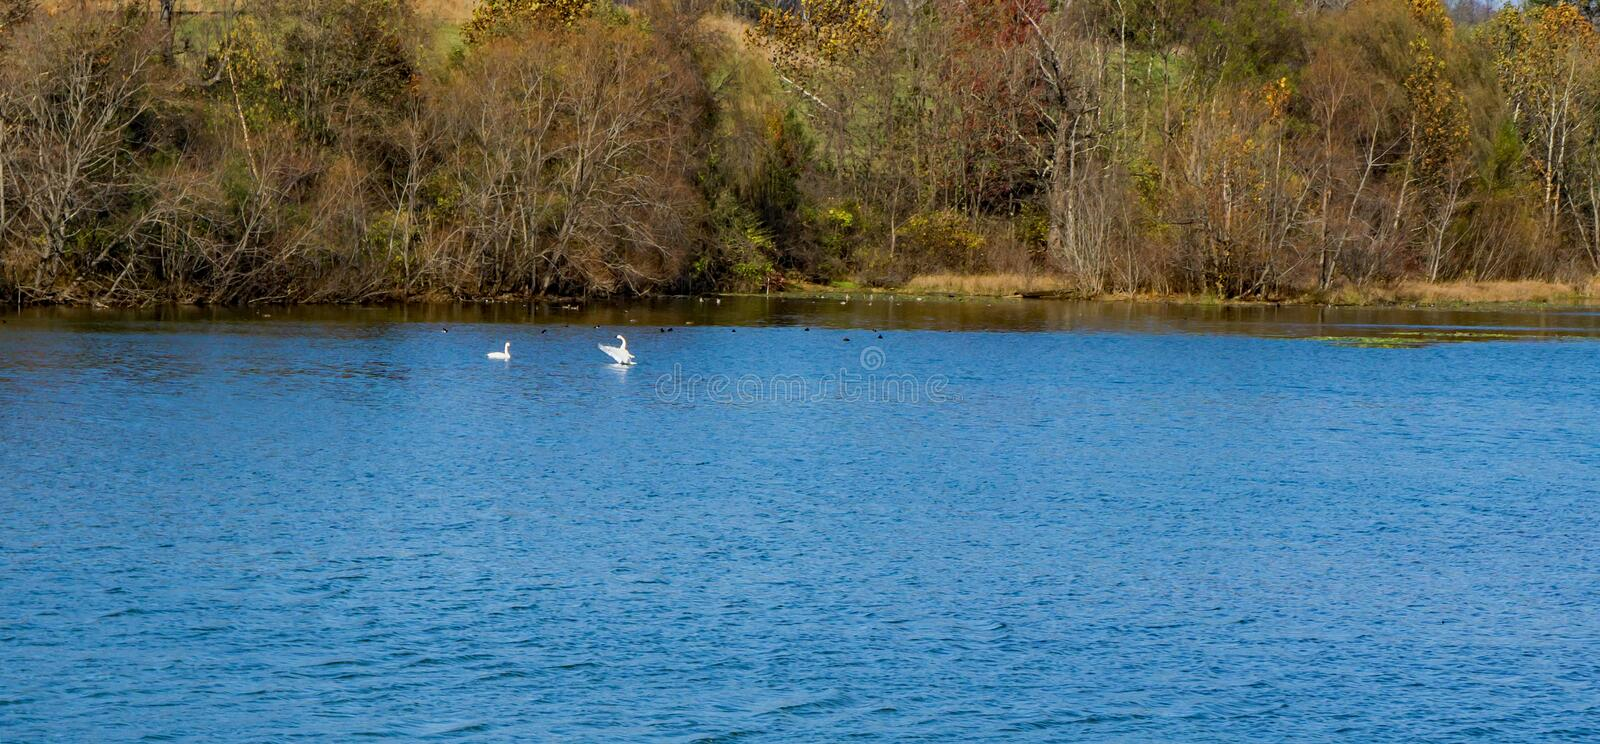 A Pair of Tundra Swans Swimming in a Pond. A pair of white Tundra Swans swimming in a pond located in The Greenfield Recreation Park, Troutville, Virginia, USA stock images